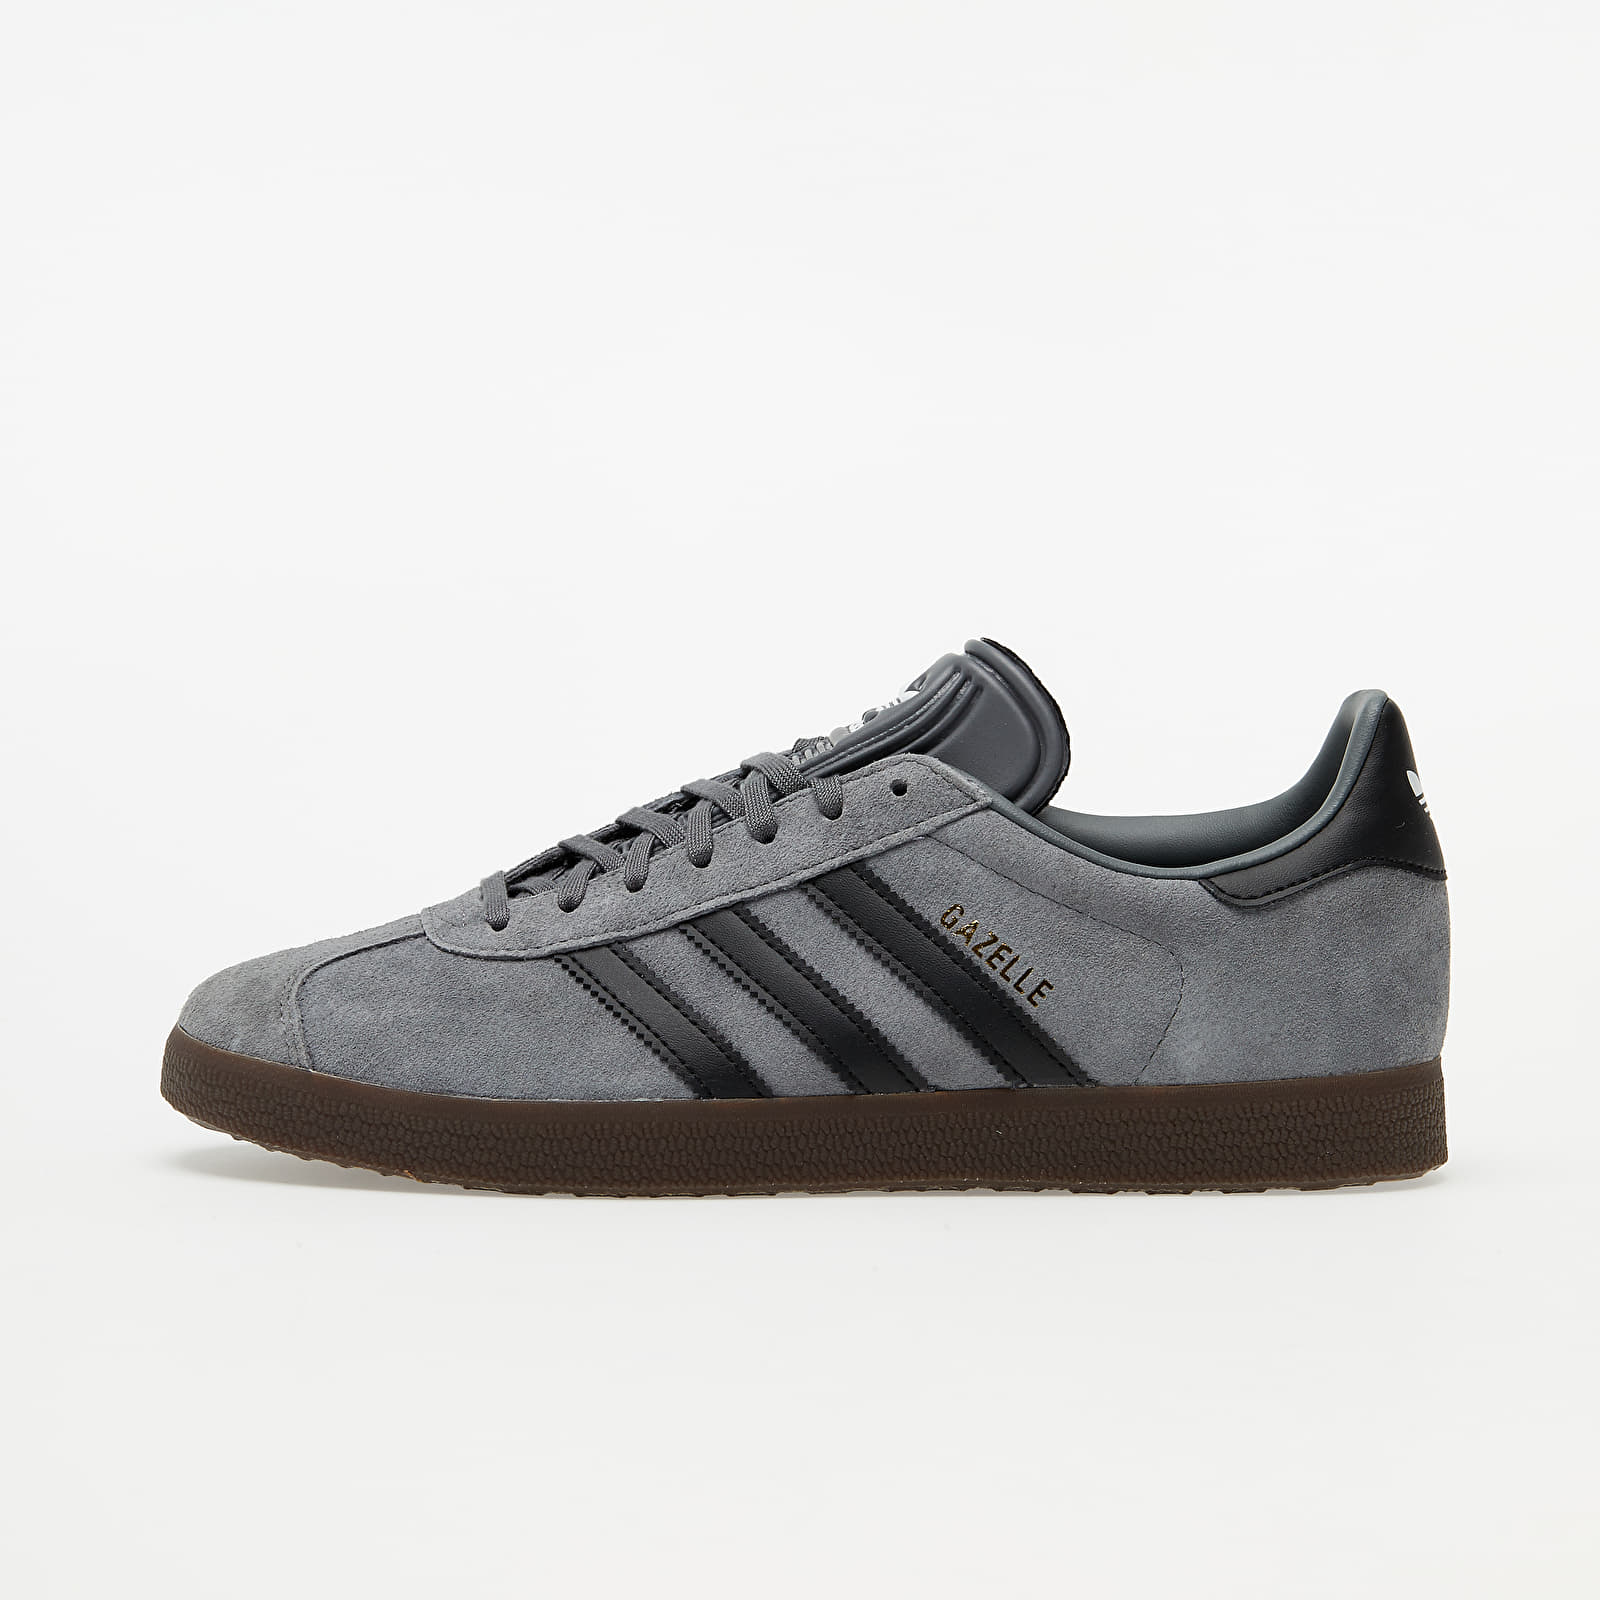 adidas Gazelle Grey Four/ Core Black/ Gum 5 EUR 45 1/3